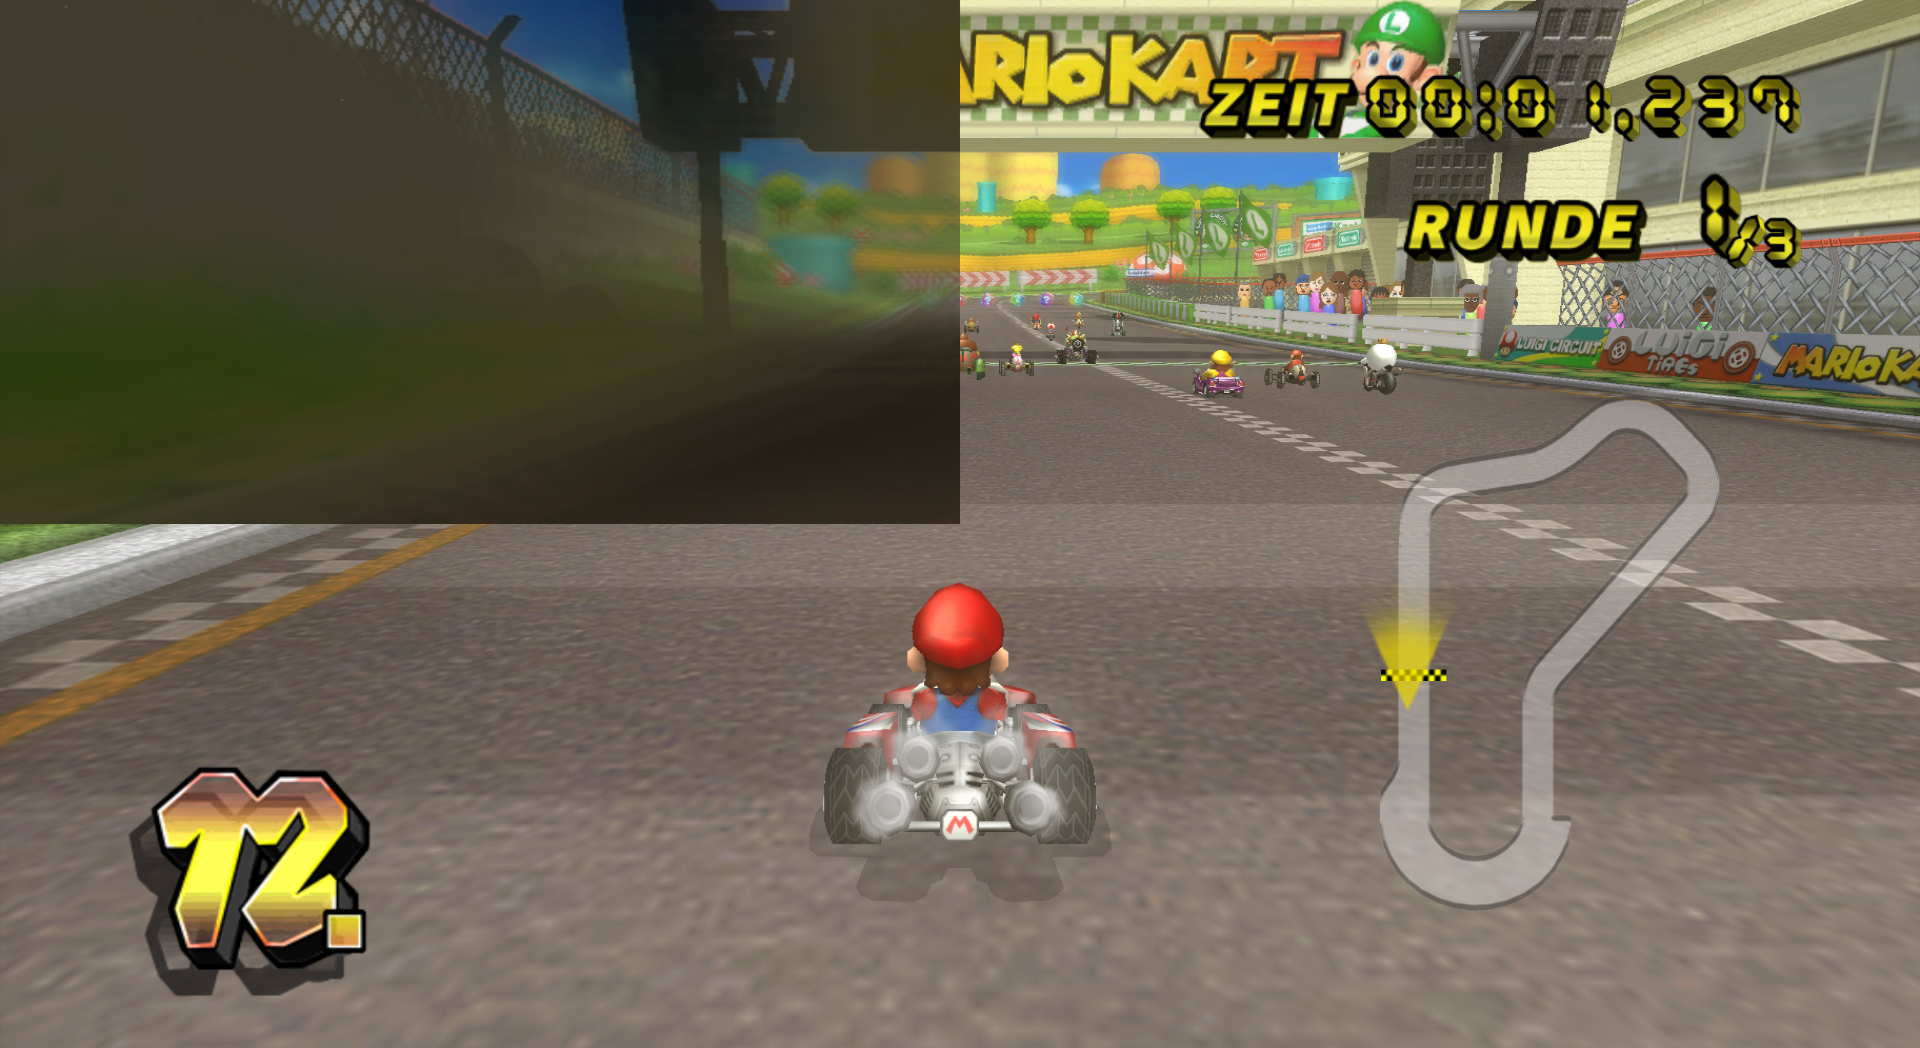 Mario kart wii emulator pc download | Mario Kart 8 looking